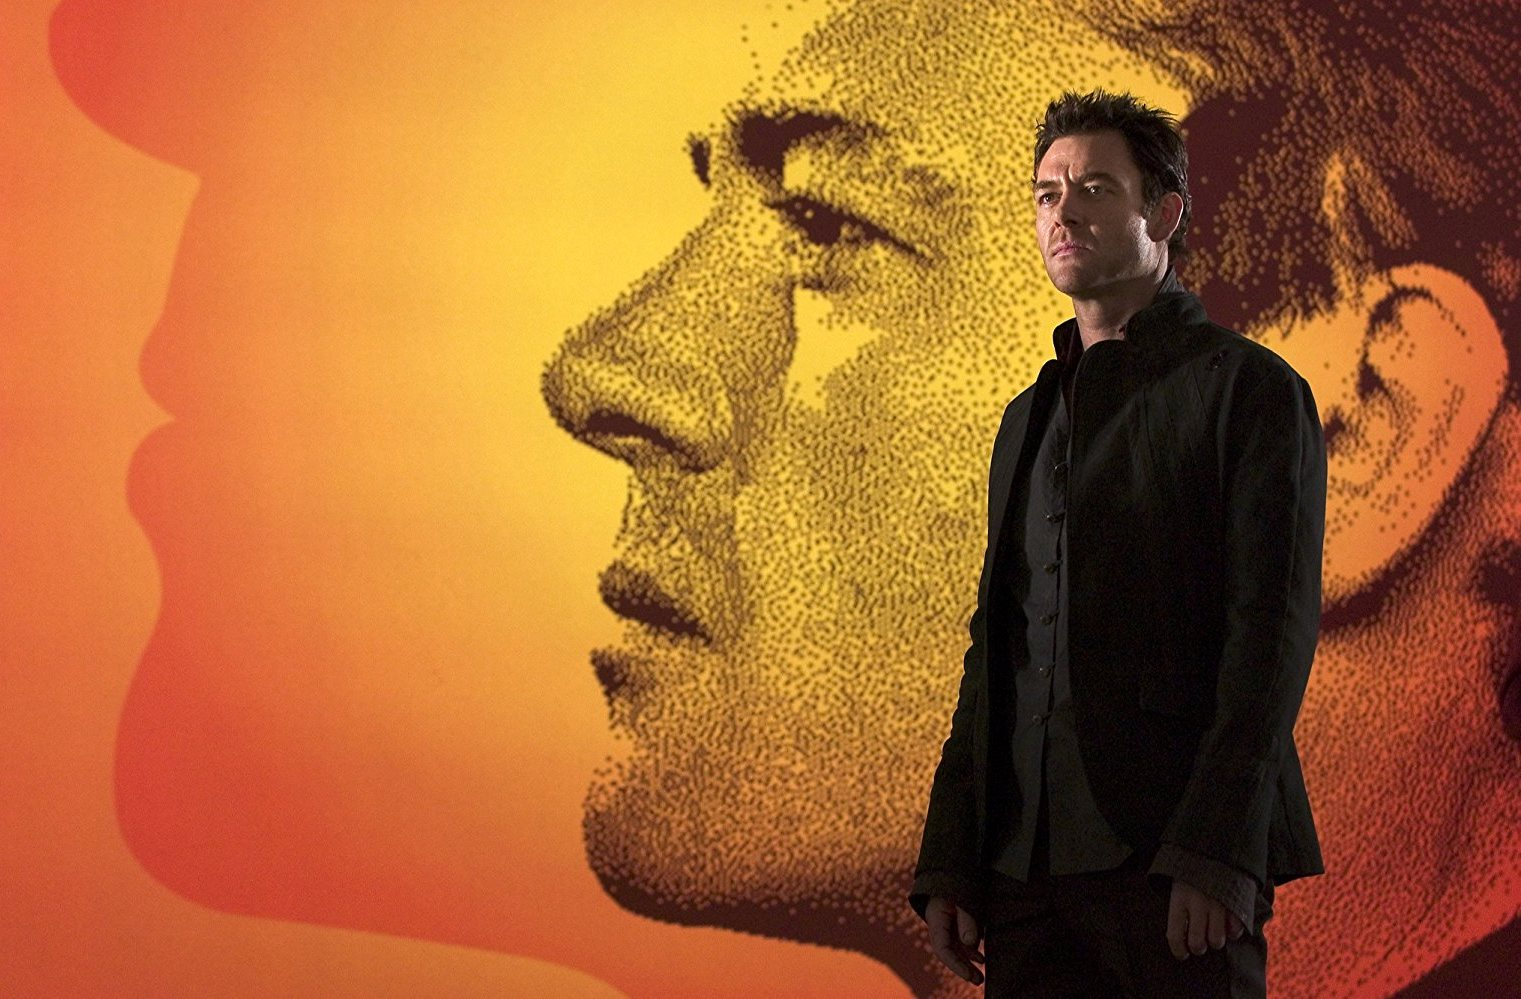 Marton Csokas as Trevor Goodchild in Aeon Flux (20050